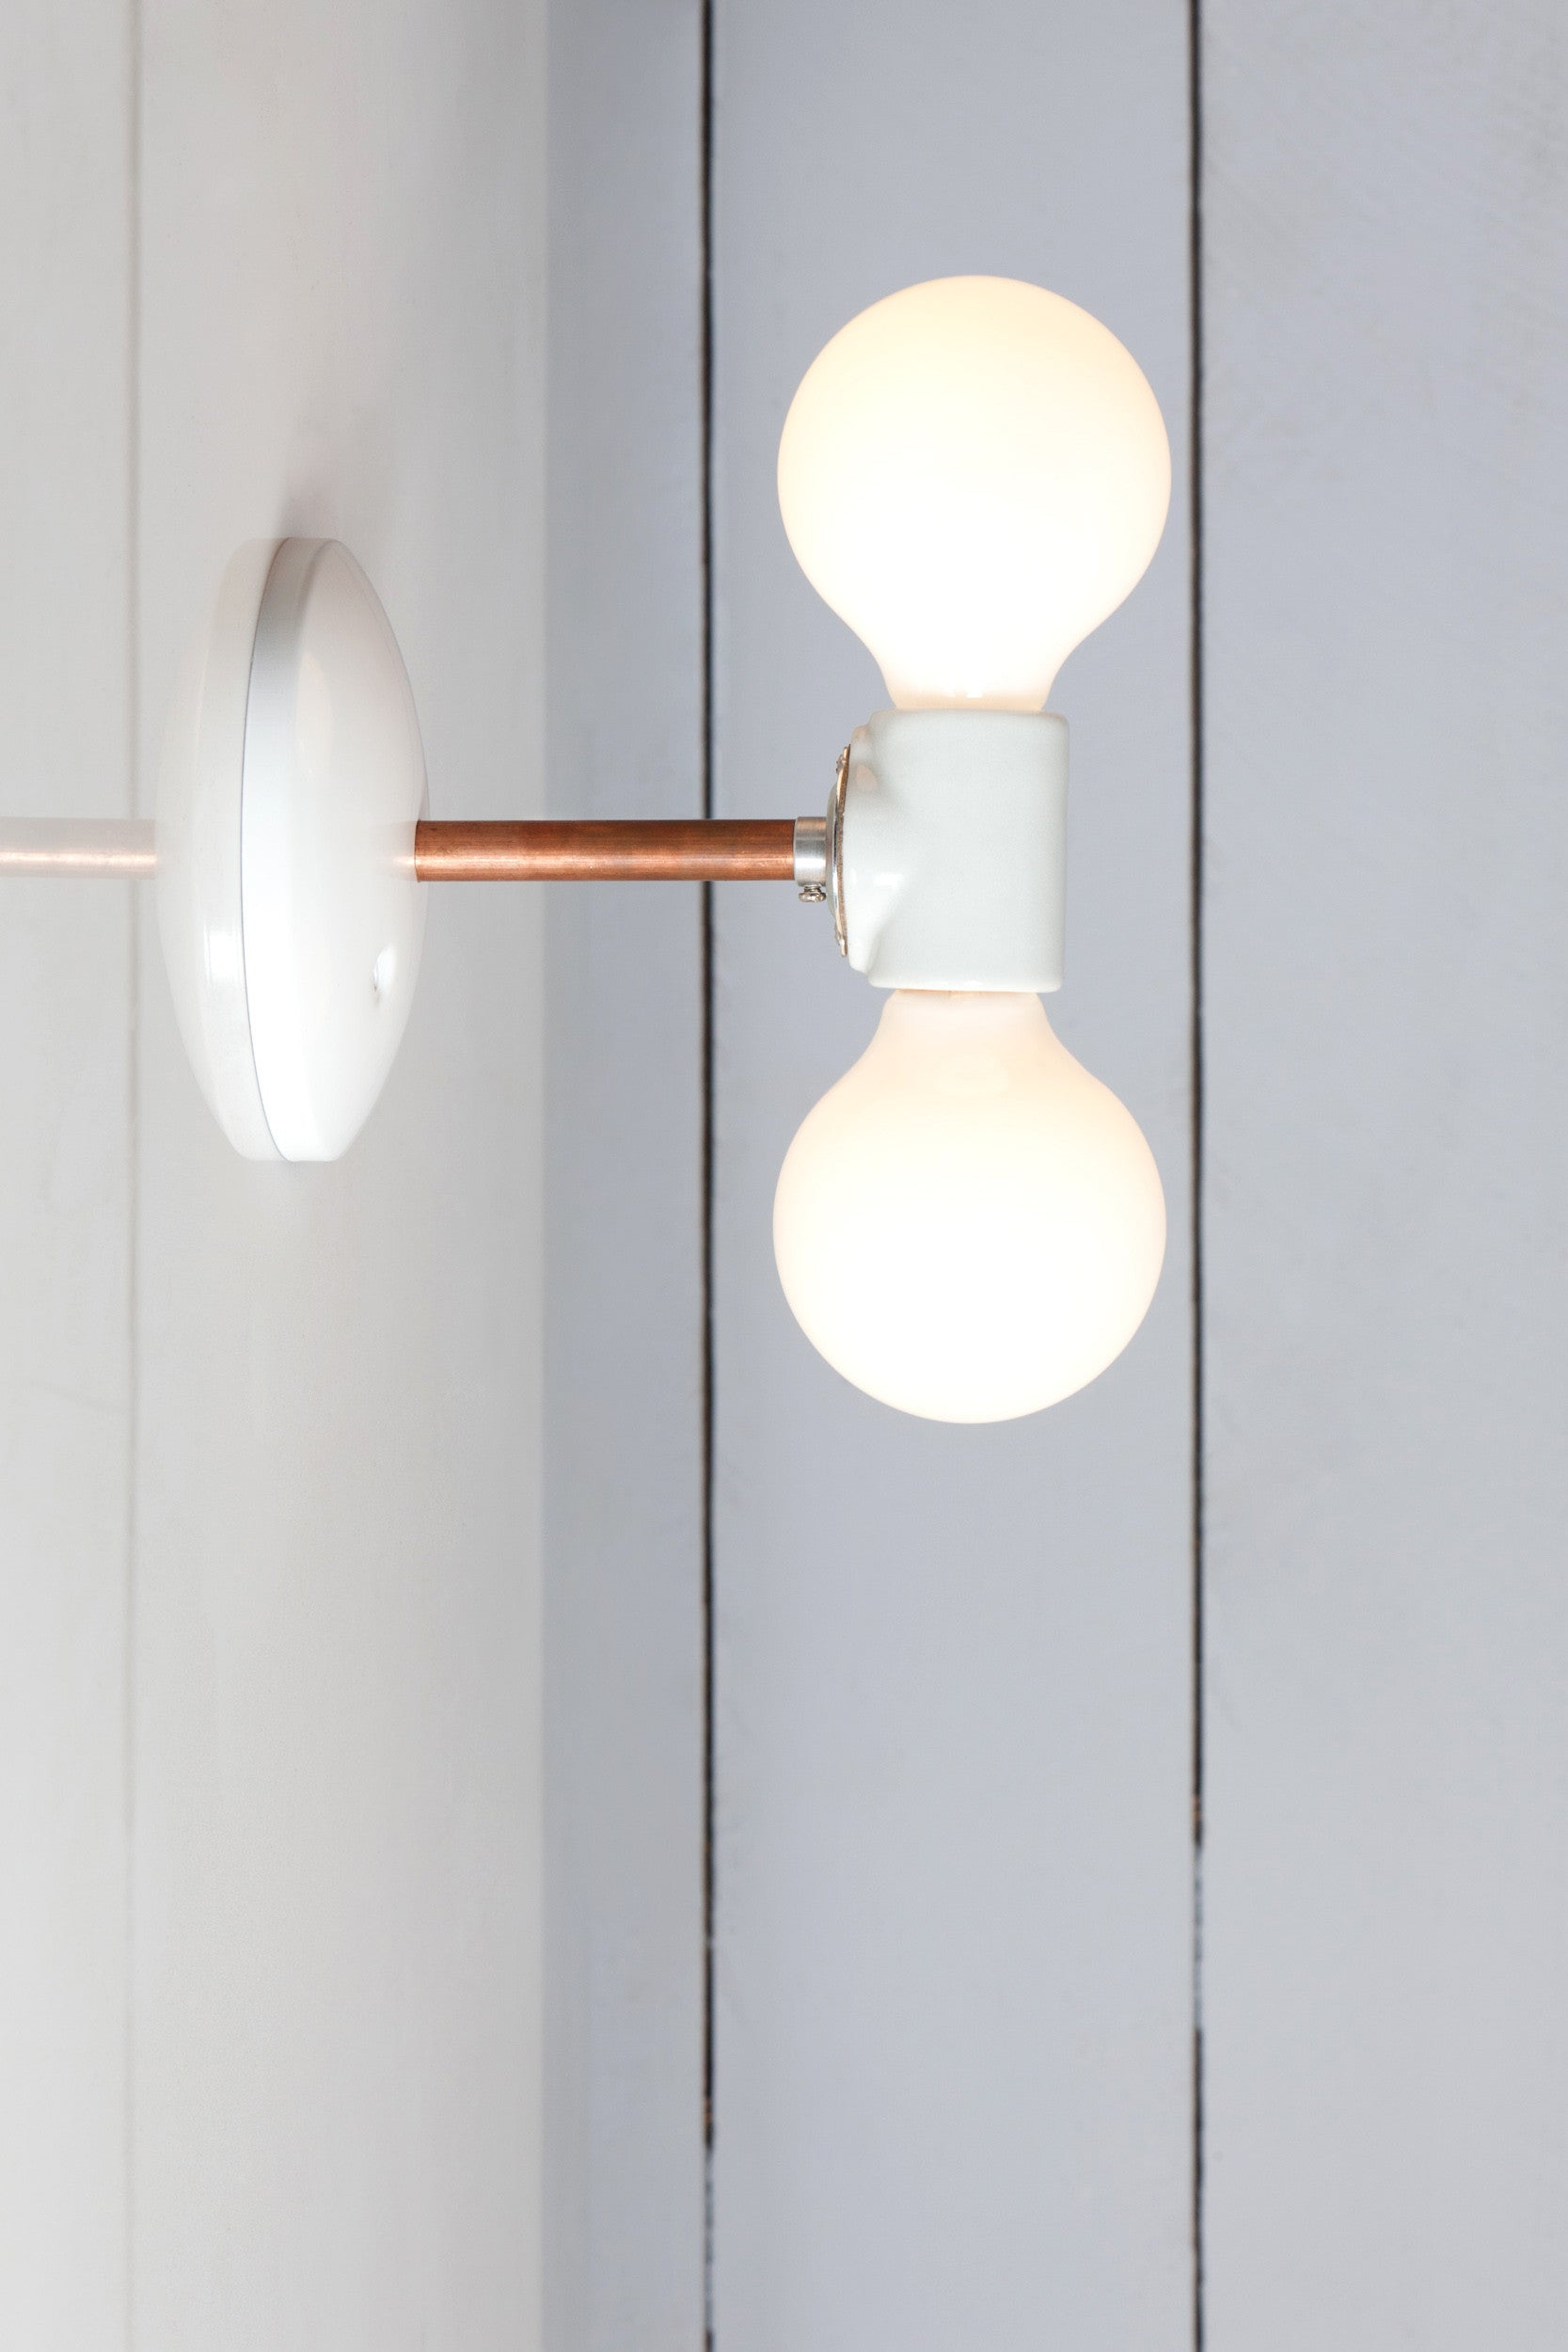 bare bulb lighting. Copper Pipe Wall Sconce Light - Double Bare Bulb Lighting 0